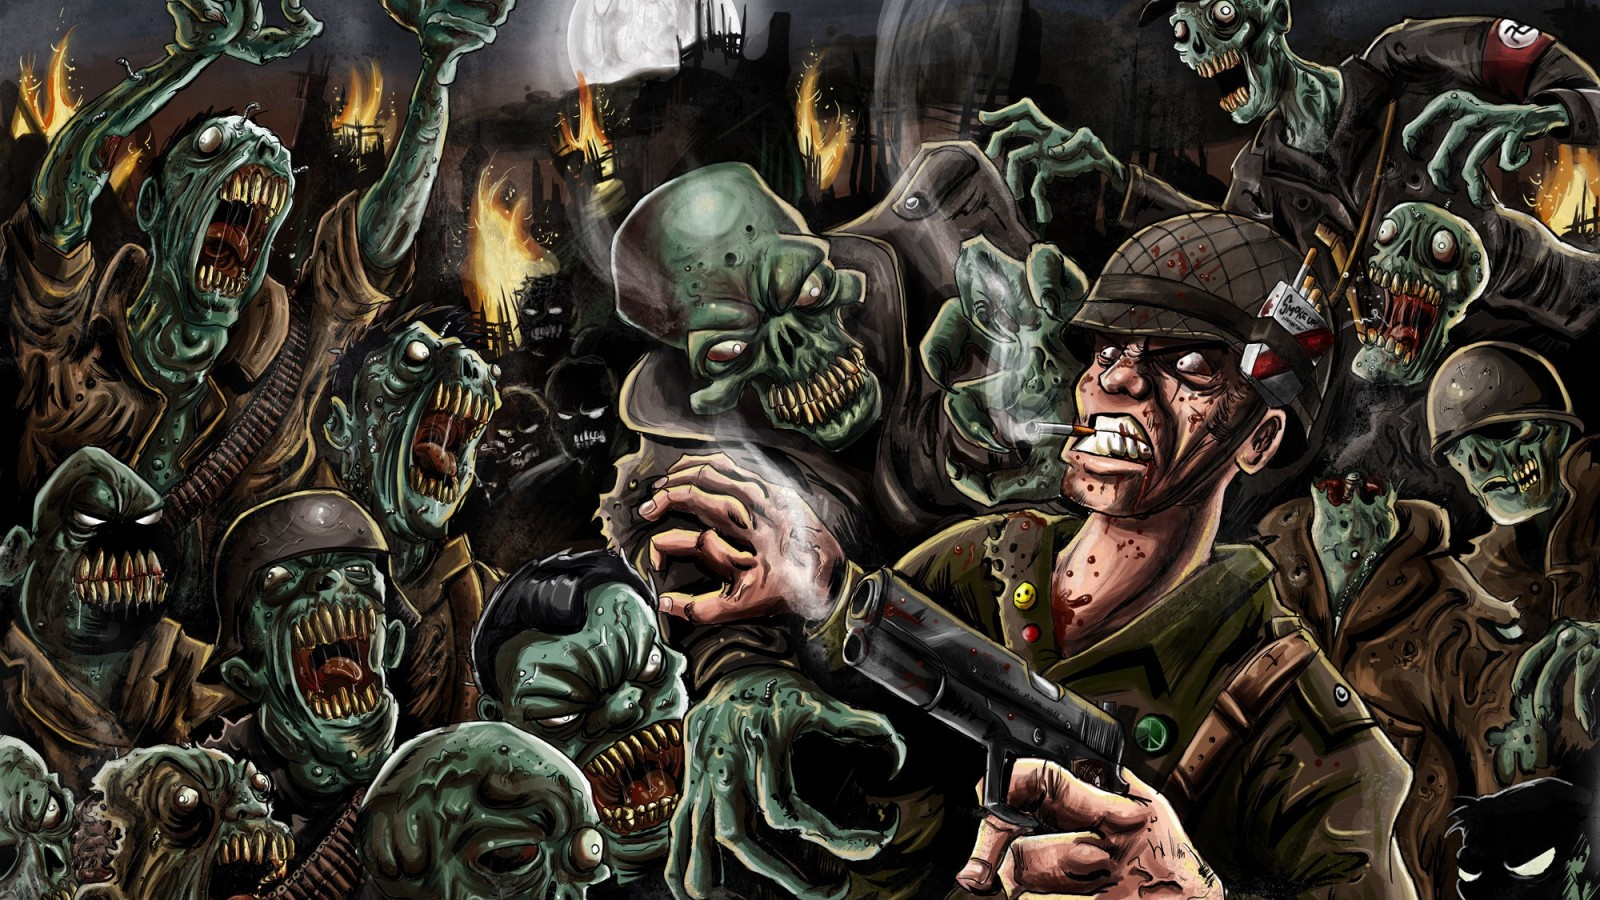 Call Of Duty World At War Wallpaper: COD Zombies Wallpapers